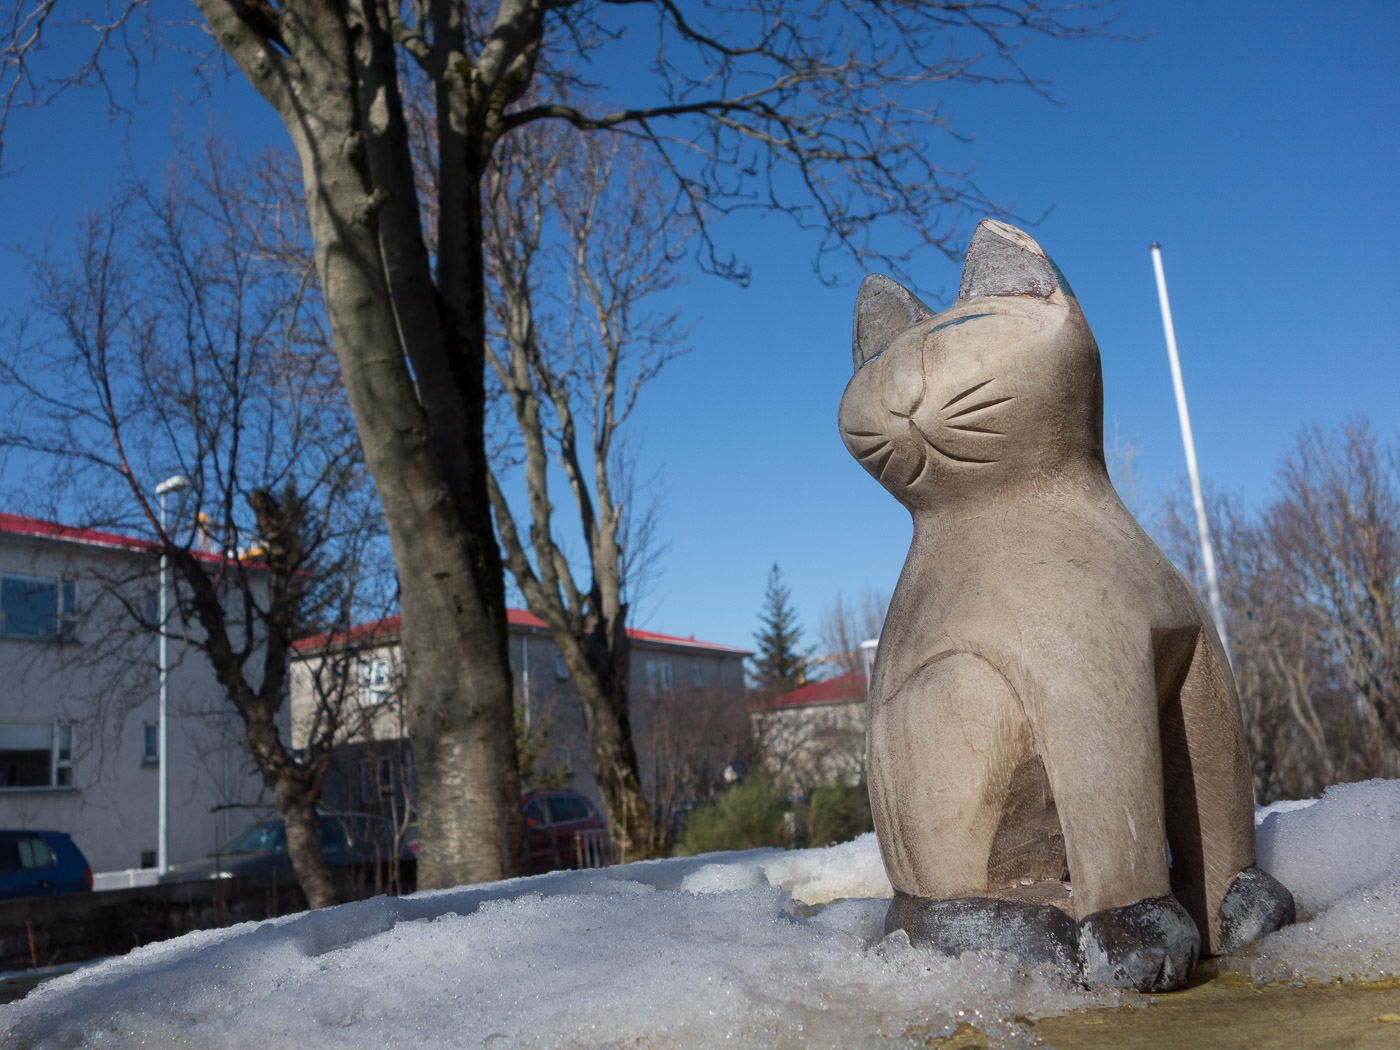 Reykjavík. Miscellaneous LXXXVI. - Cats like springtime - and to be outside again! (1 till 29 April 2015)